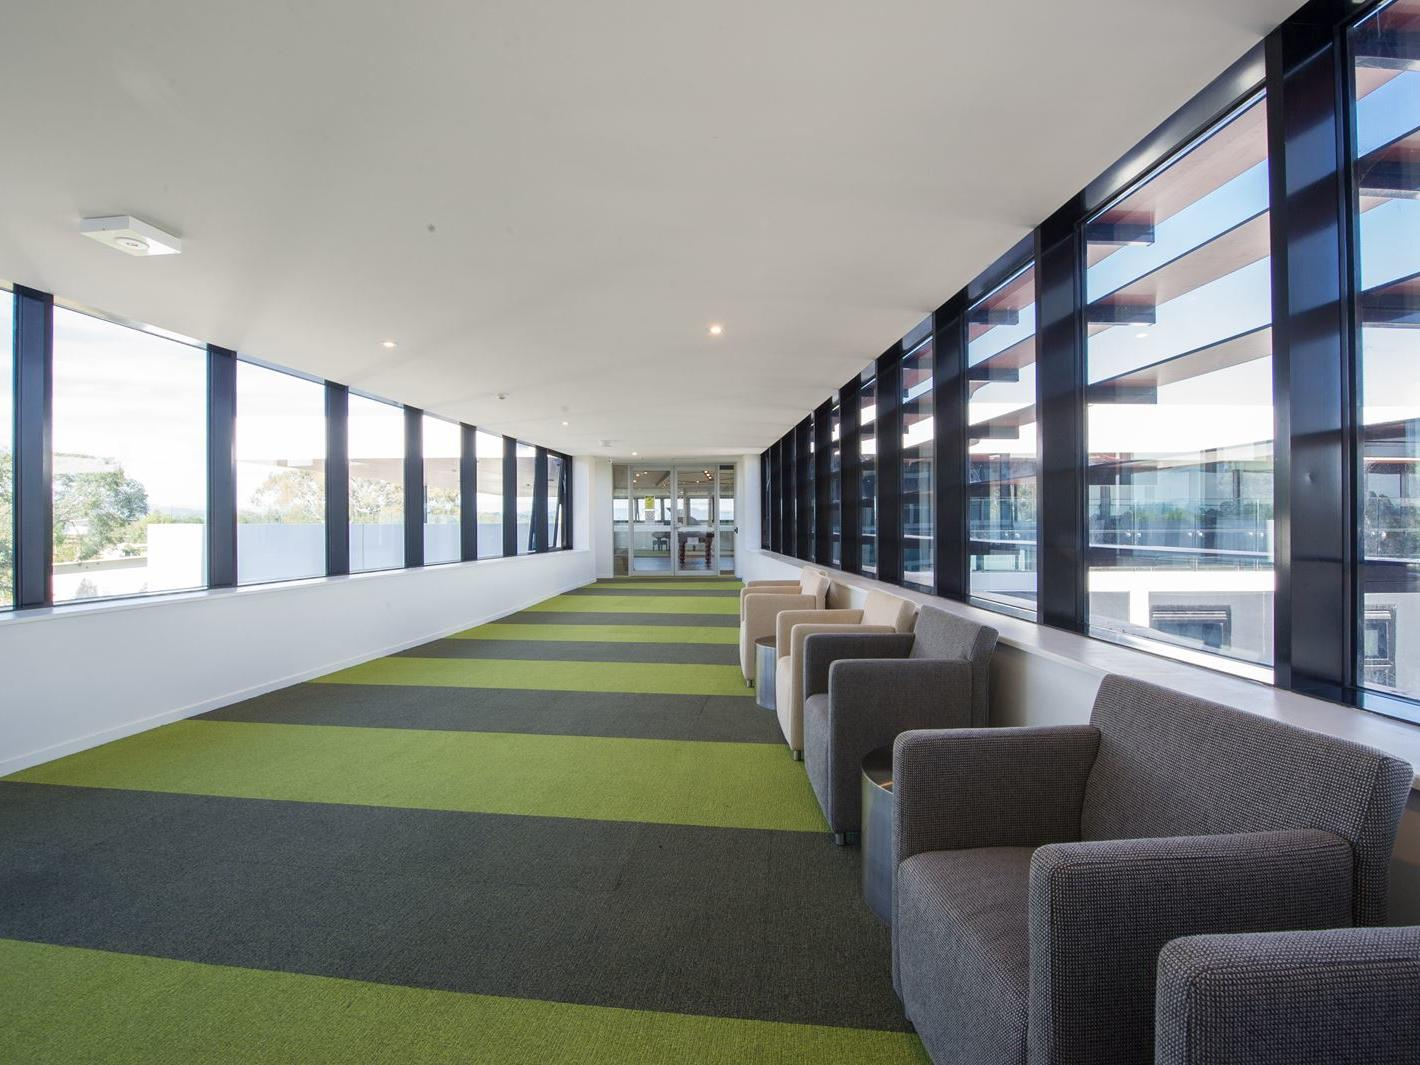 The building makes the most of the natural sunlight, even in the corridors!